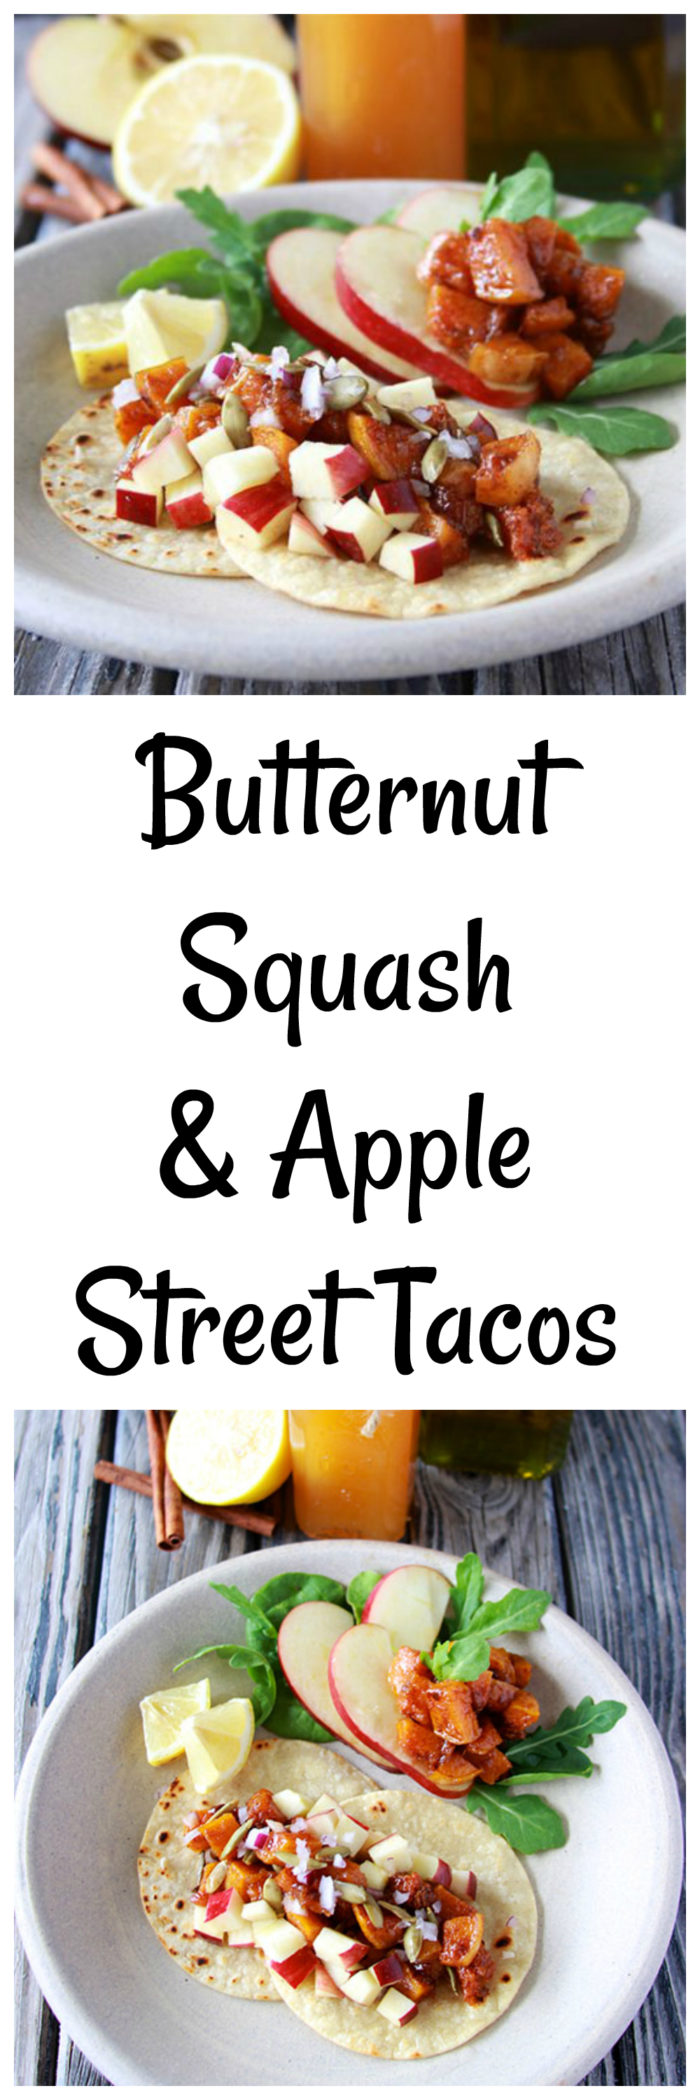 Butternut Squash and Apple Street Tacos is an delish autumn dinner!www.cookingwithruthie.com